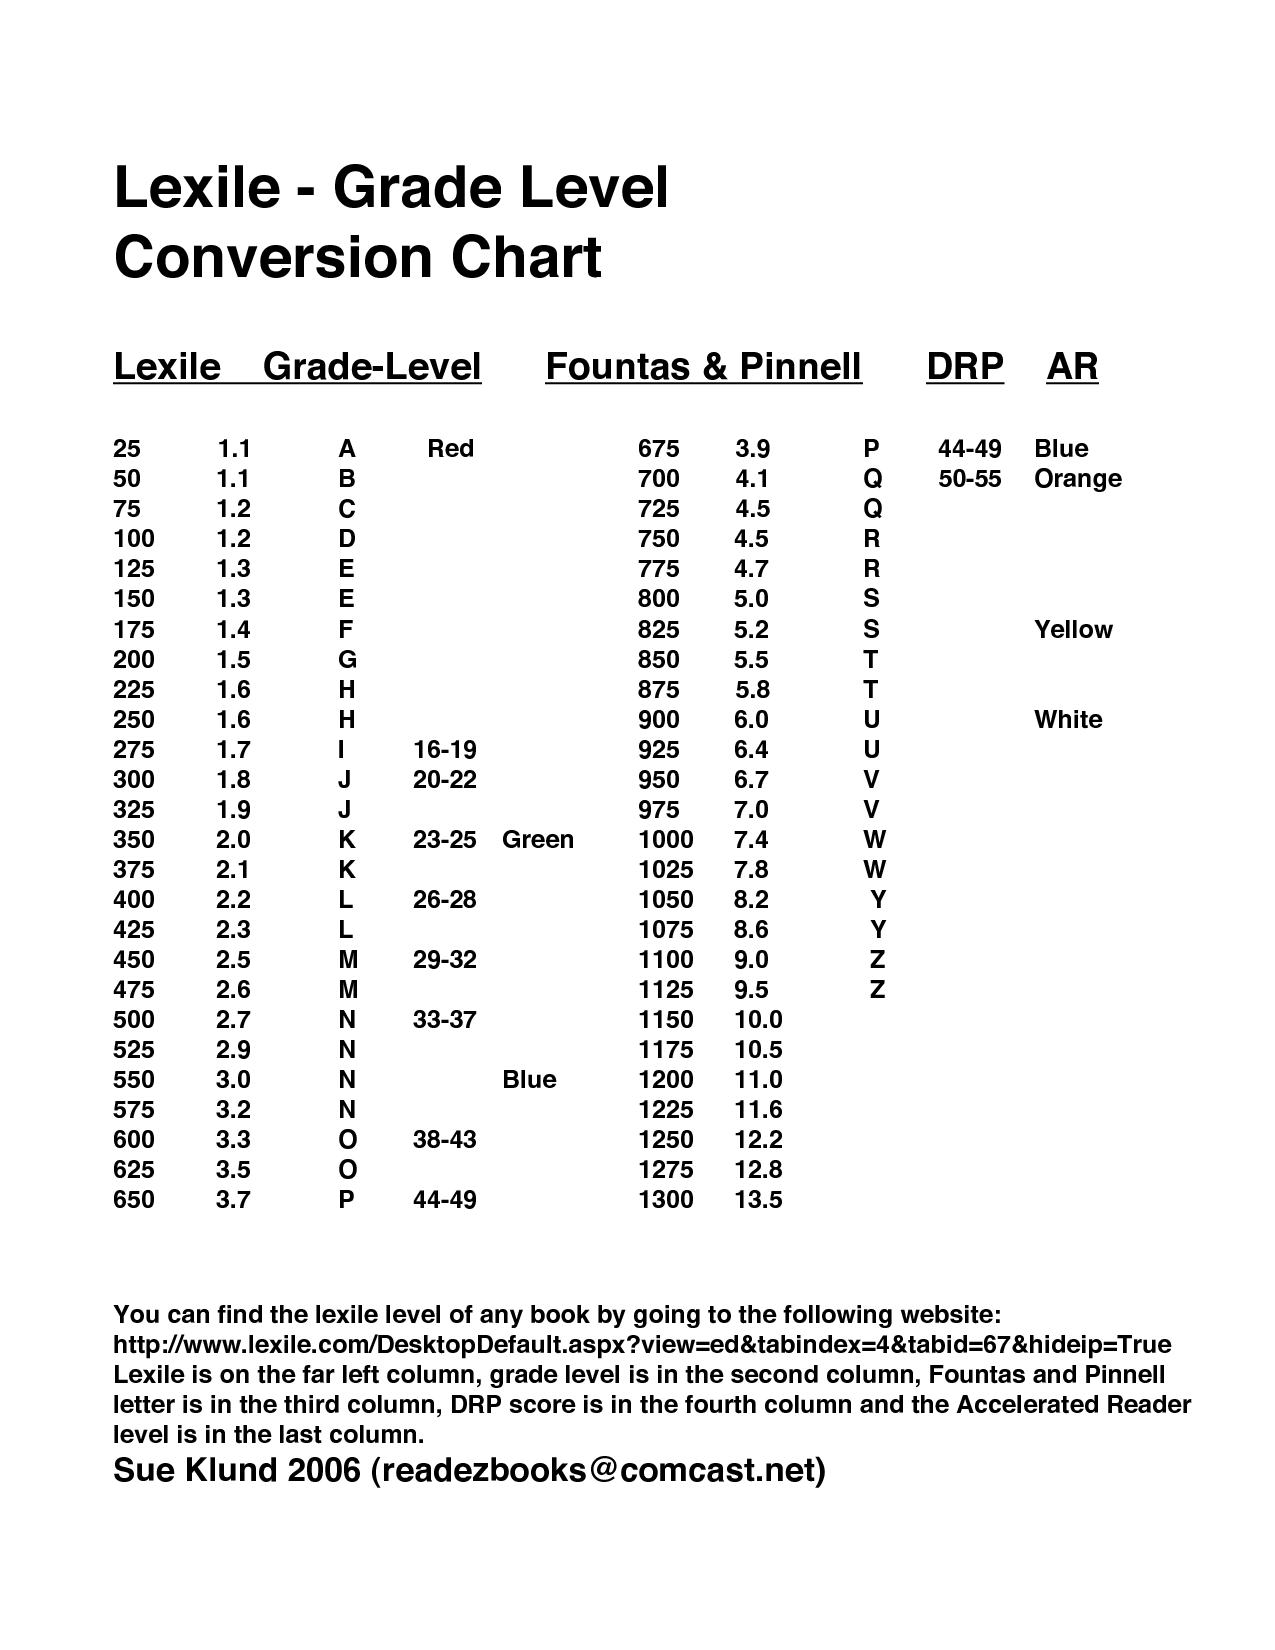 Lexile grade level conversion chart classroom ideas graded reading level and lexile score nvjuhfo Gallery